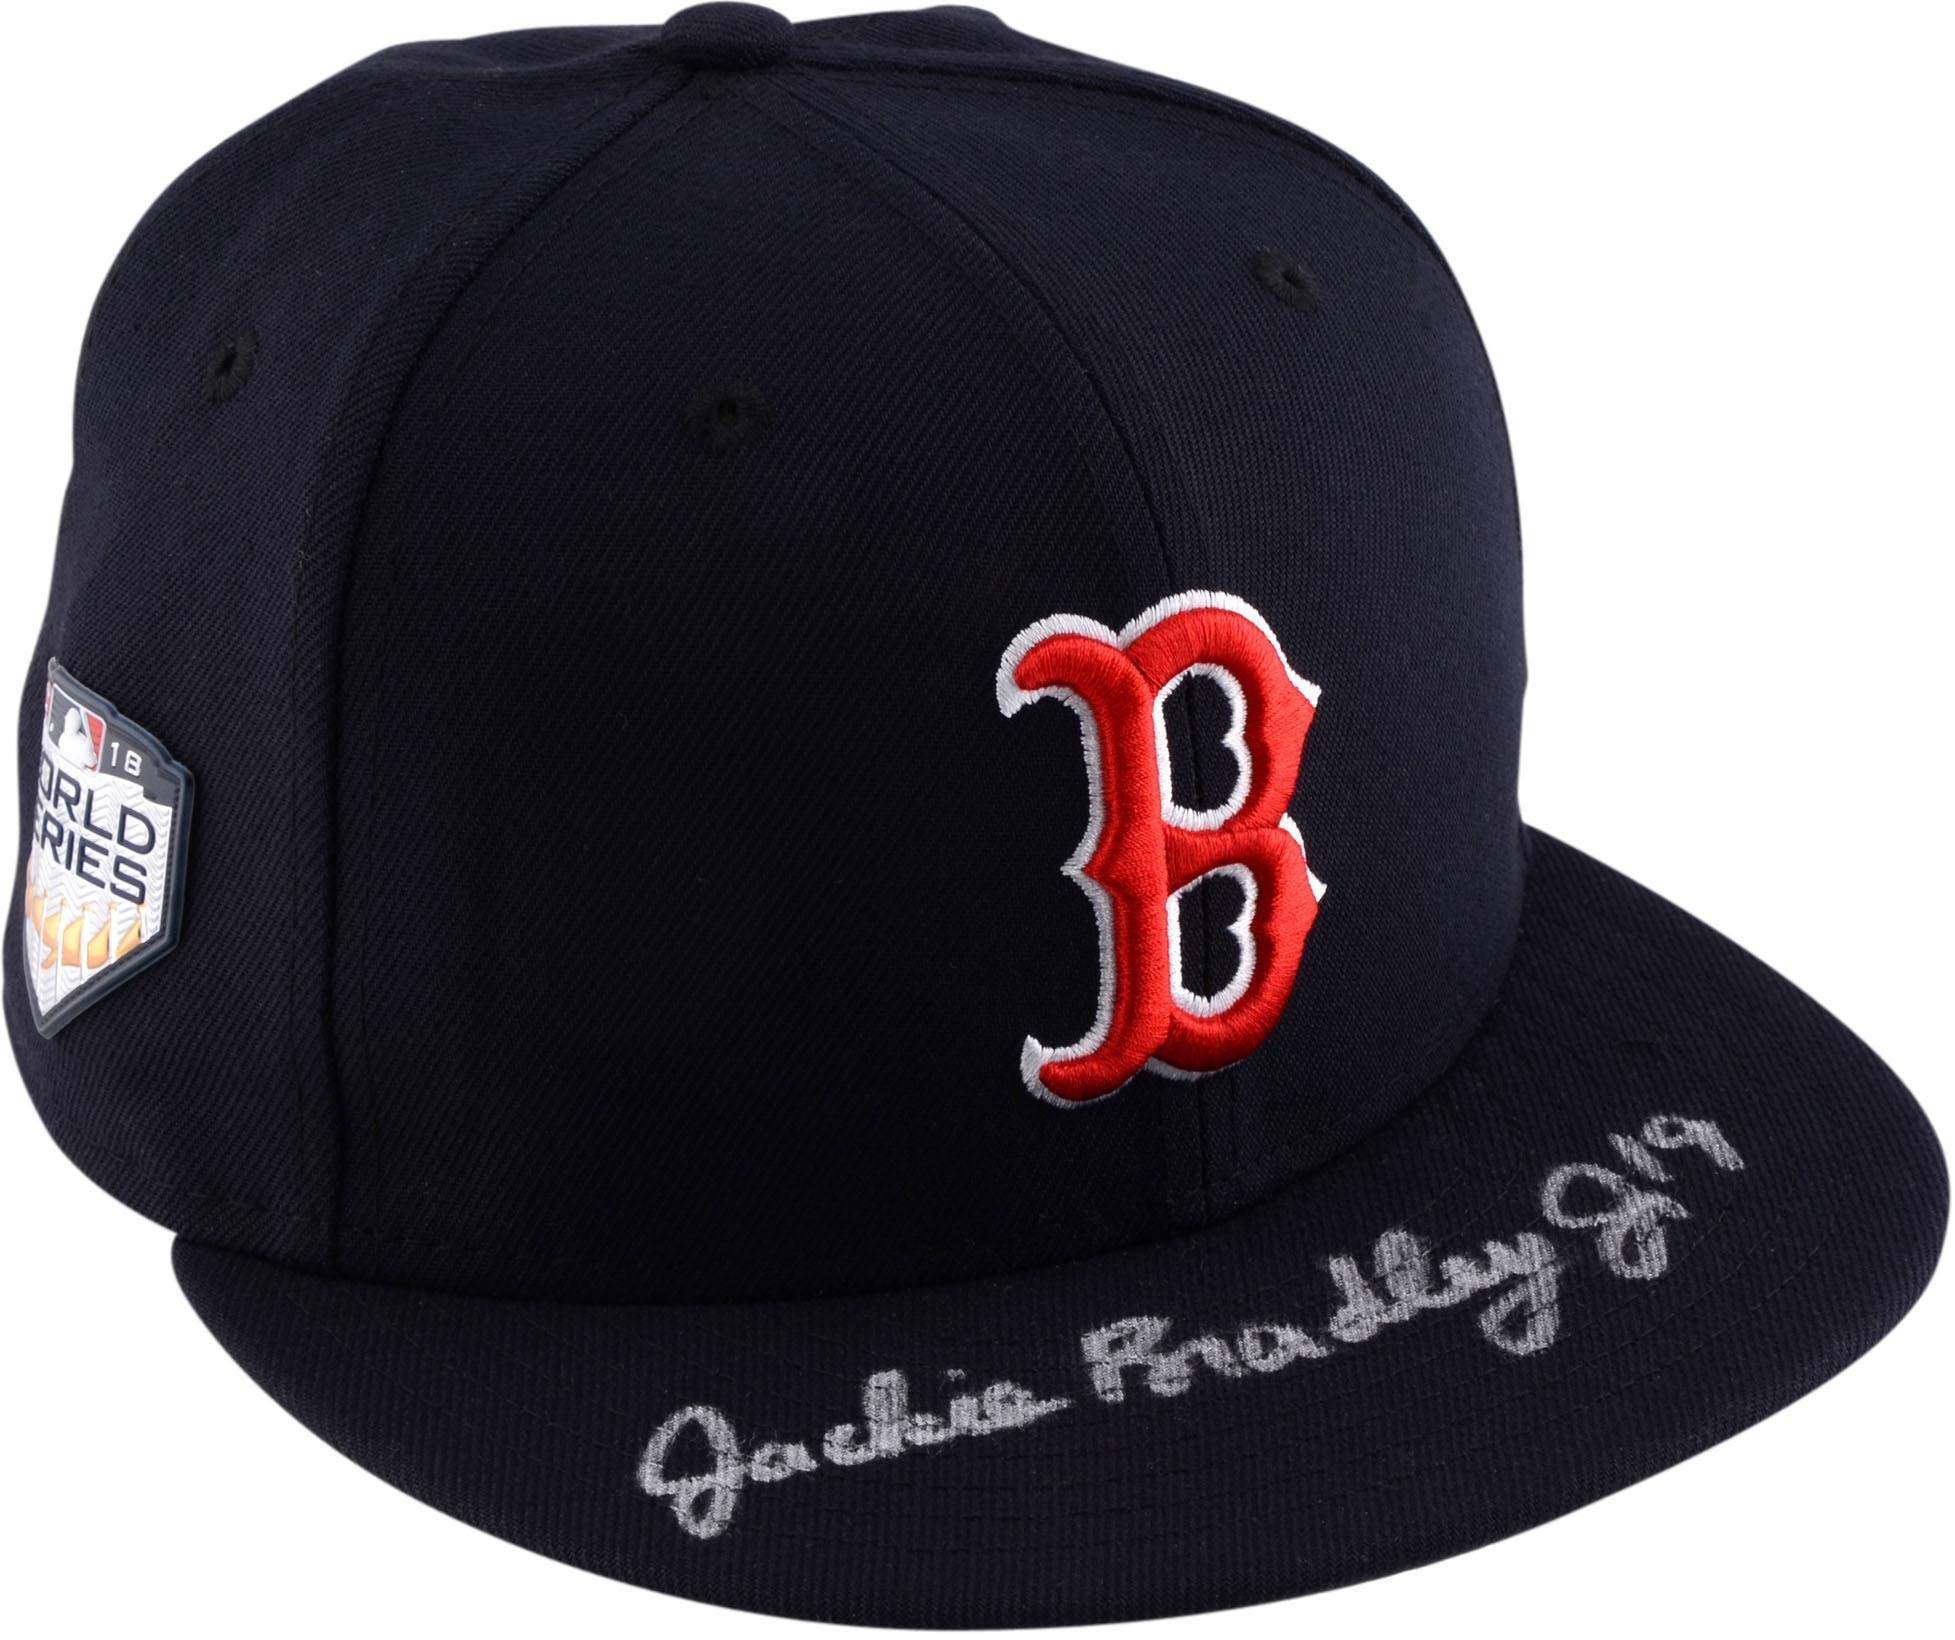 Jackie Bradley Jr. Boston Red Sox 2018 MLB World Series Champions Autographed World Series Cap Fanatics Authentic Certified